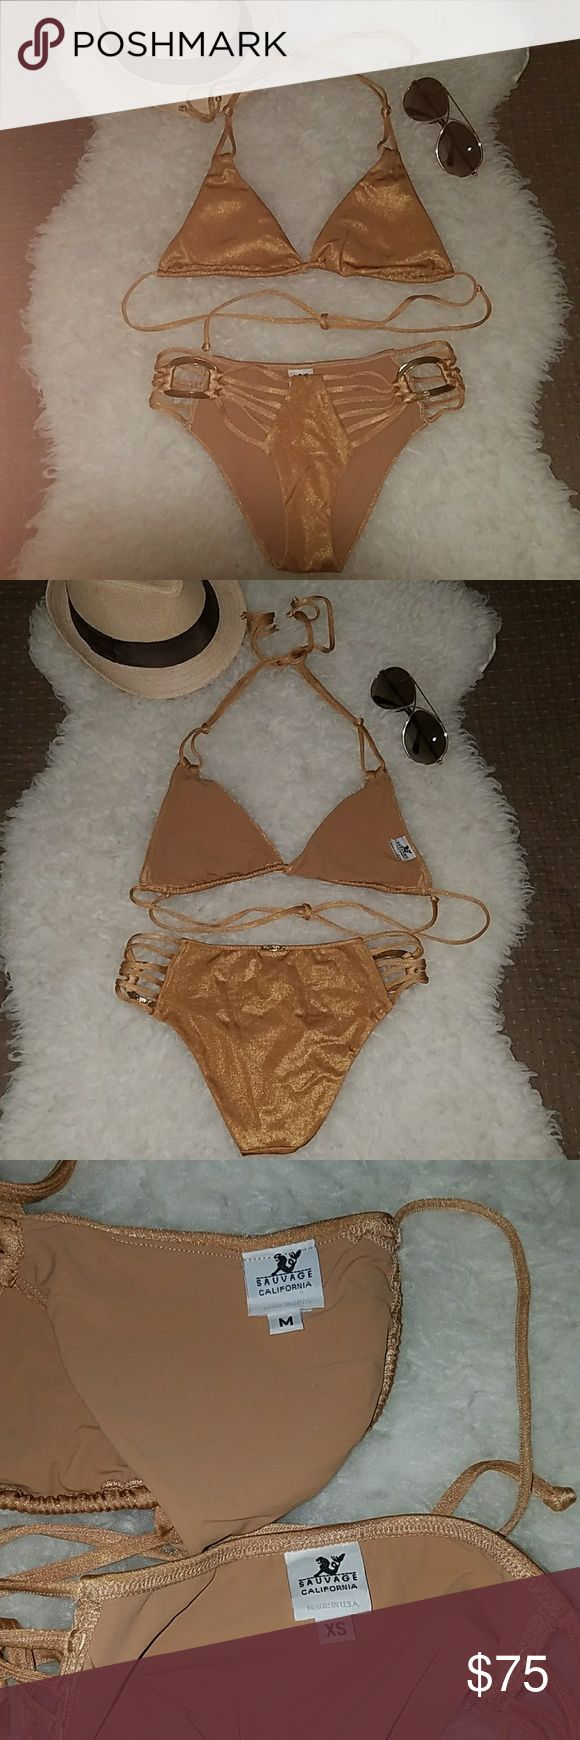 Sauvage California Gold Bikini Sauvage California Gold Bikini Exquisite style with lots of details  Bottom: XS Top: Medium  Sexy AF! Sold as set only Worn only 2 times, like new condition Sauvage California Swim Bikinis